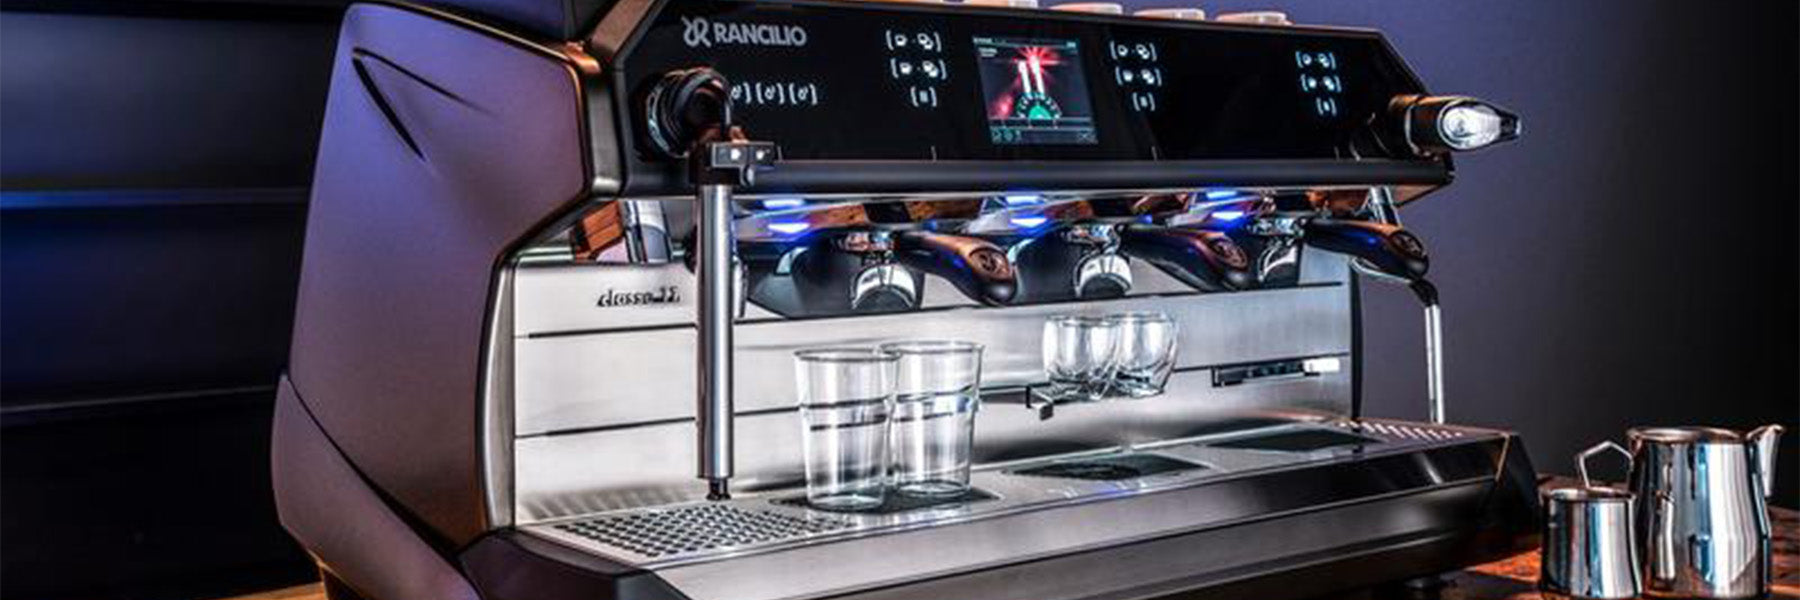 Choosing the right coffee machine for your business